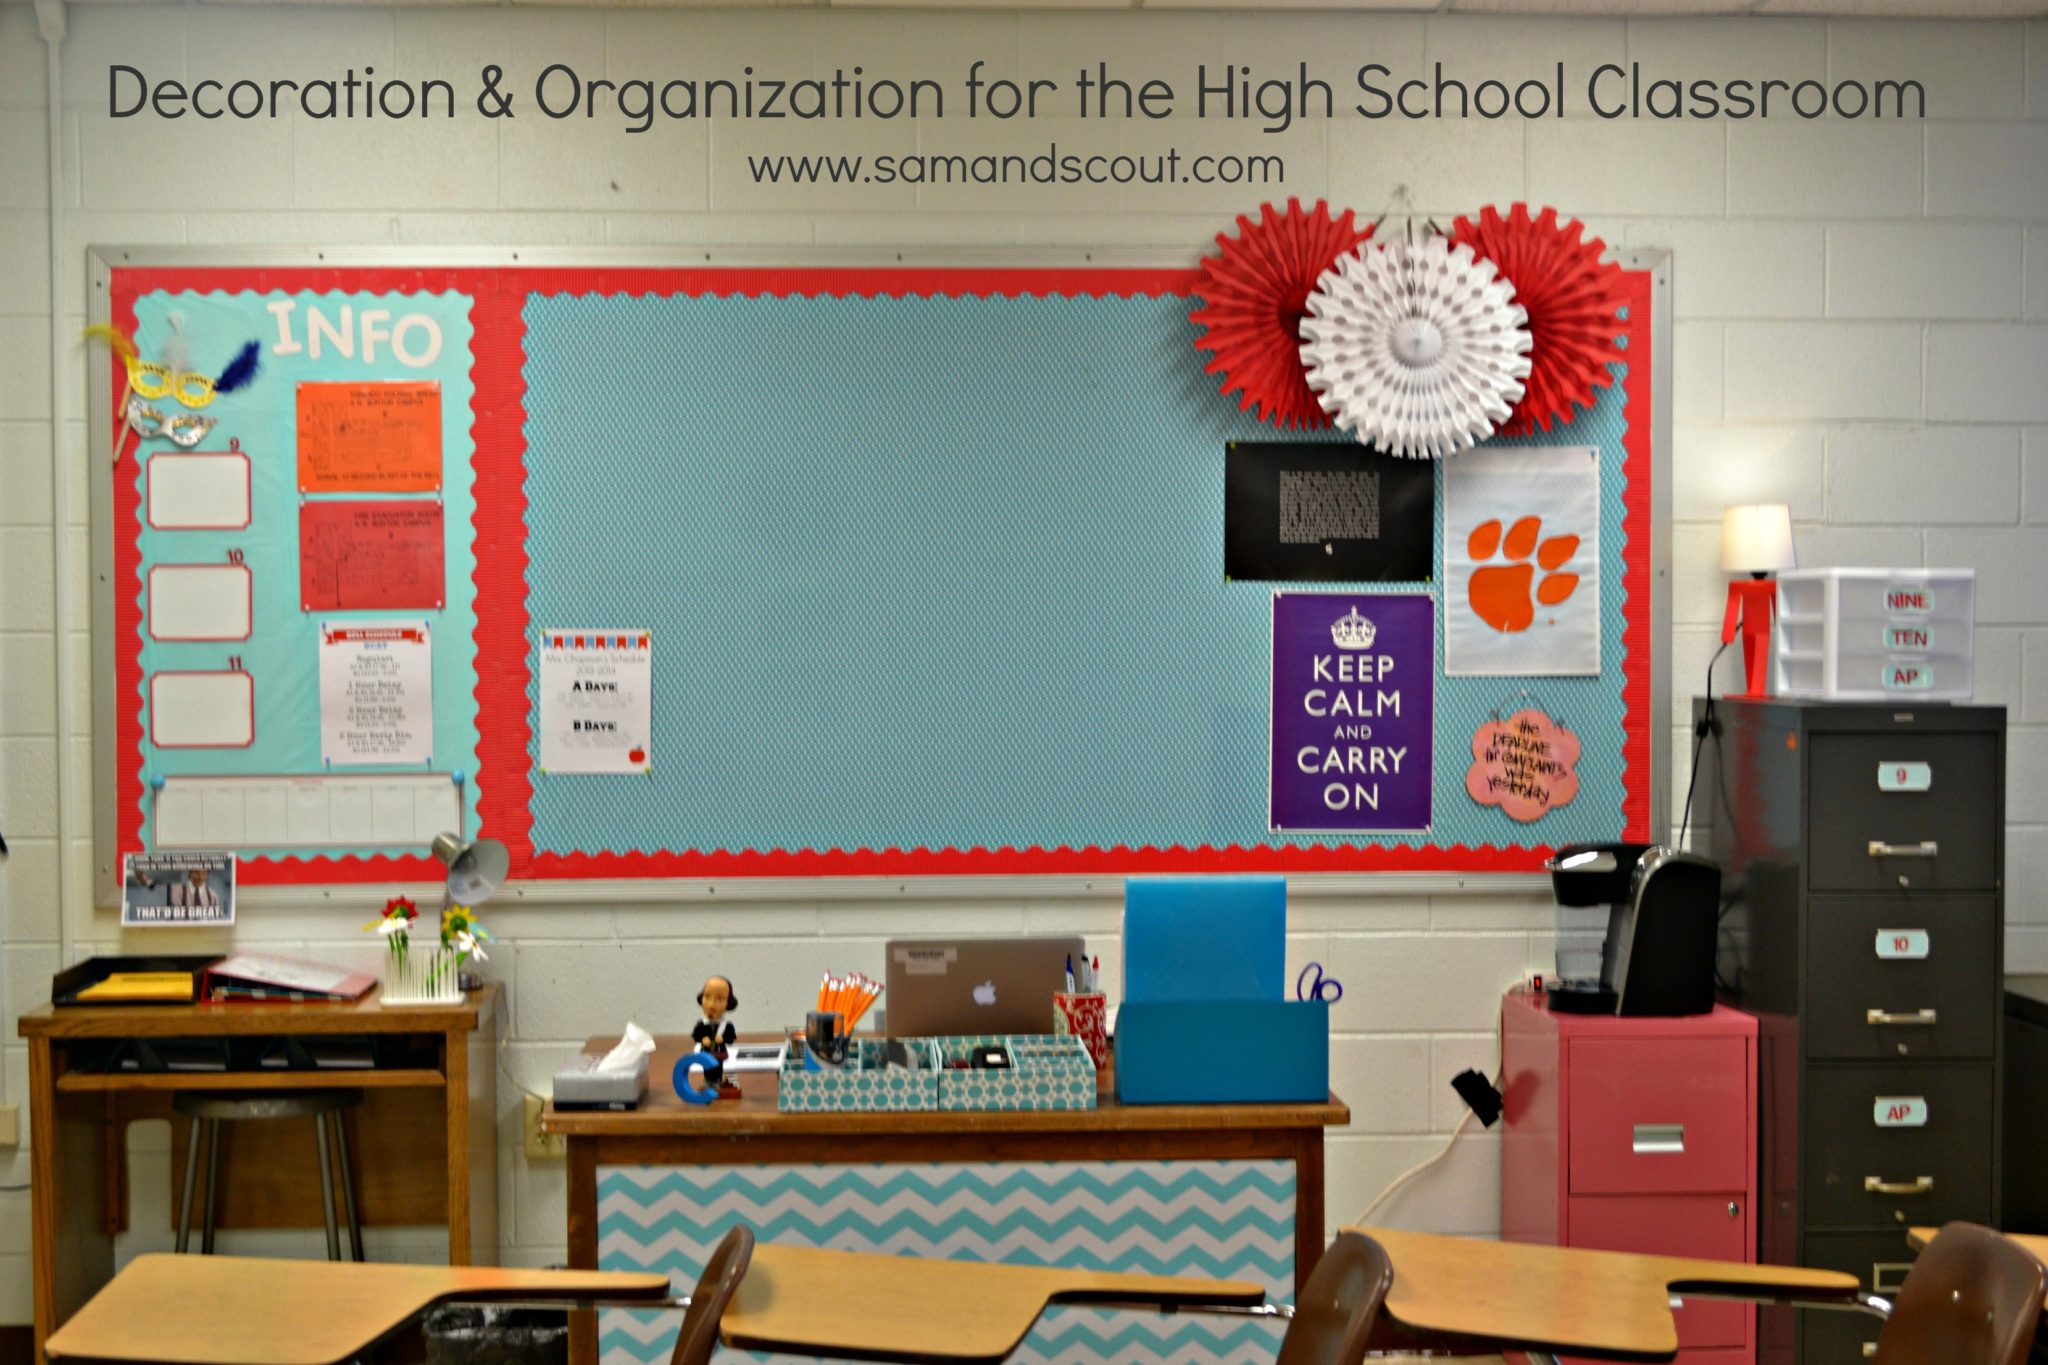 Classroom Decorations Middle School ~ Decoration organization for the high school classroom